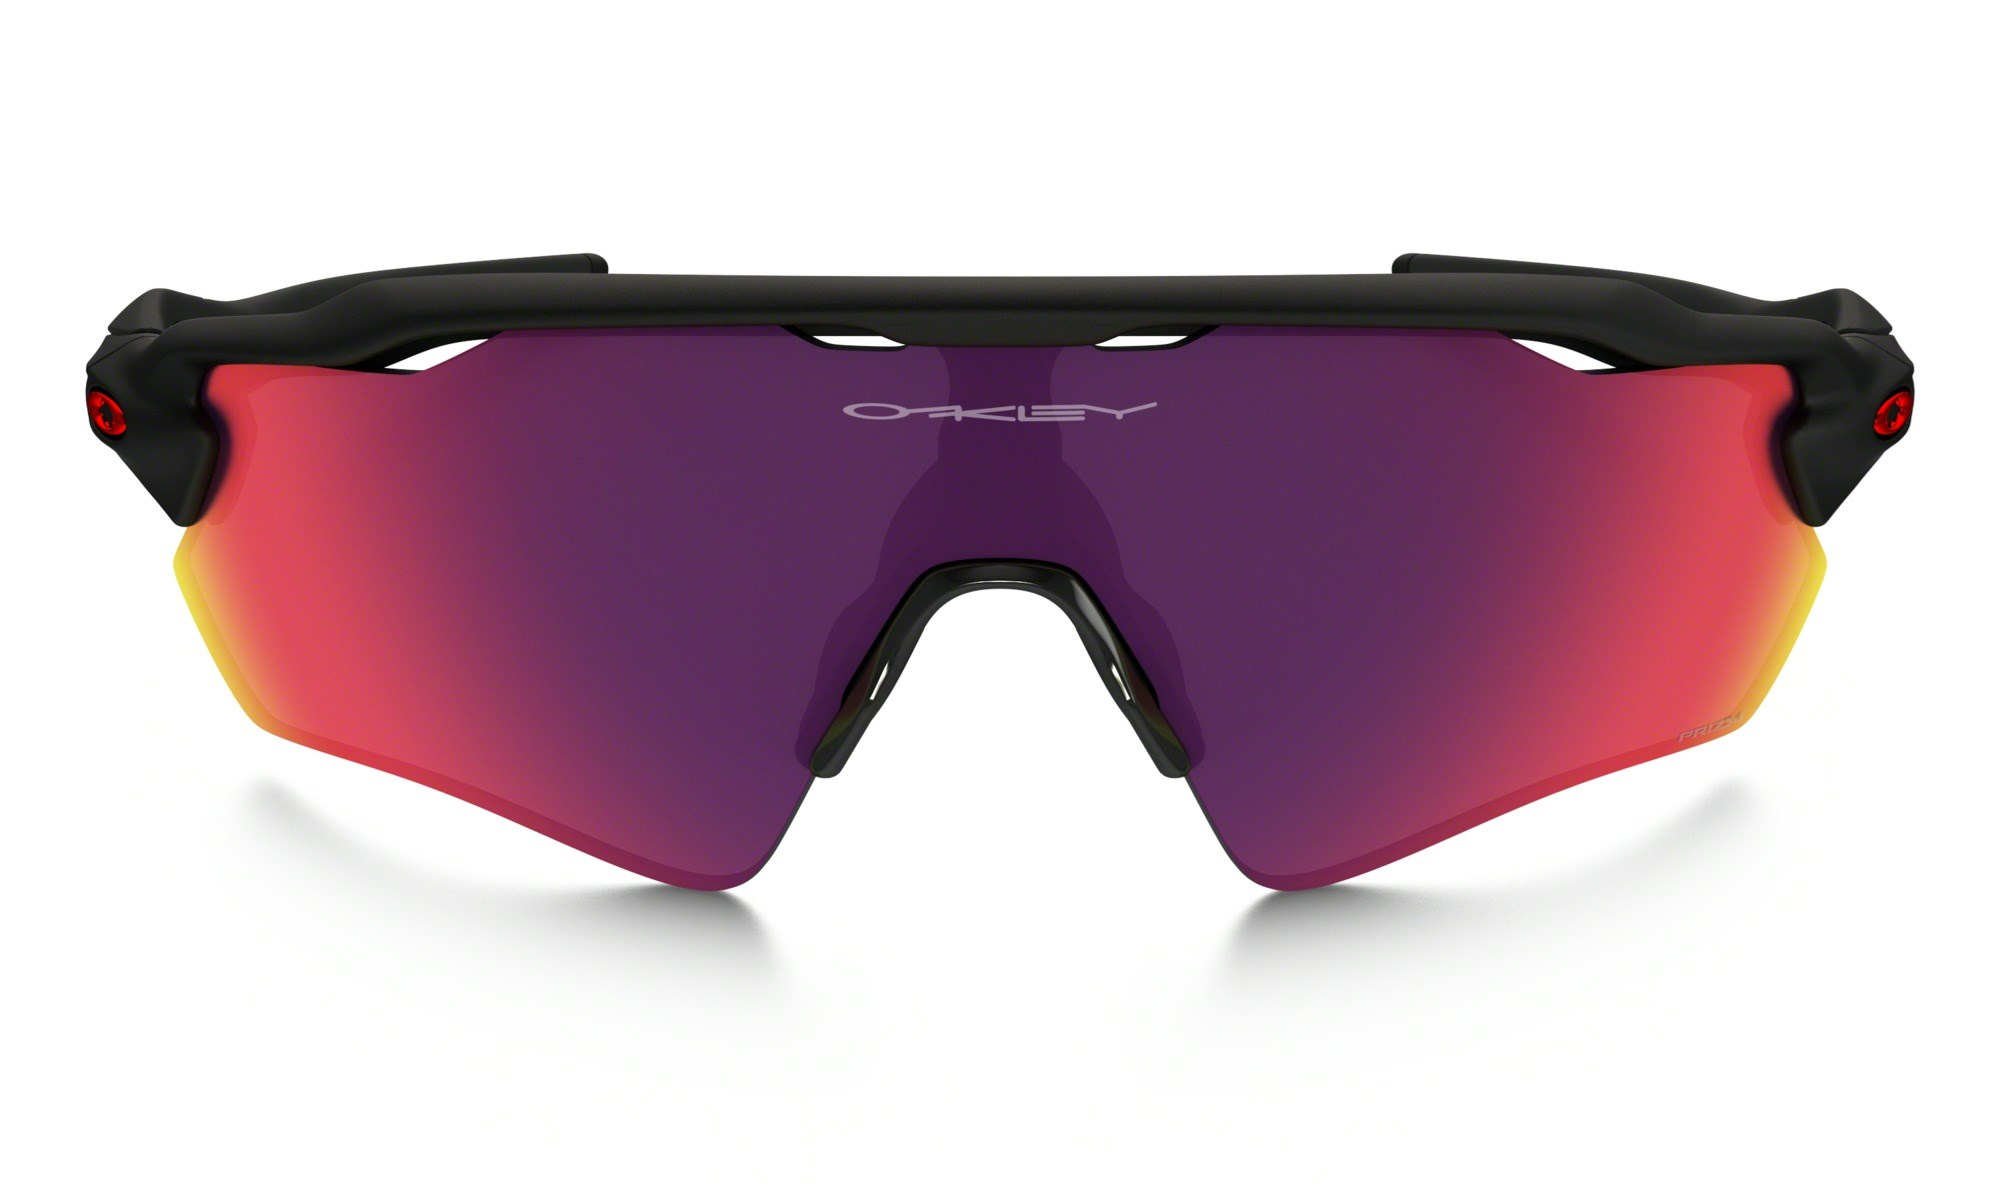 21d805f89f43a Oakley Radar EV Path Matte Black Prizm Road £155.00